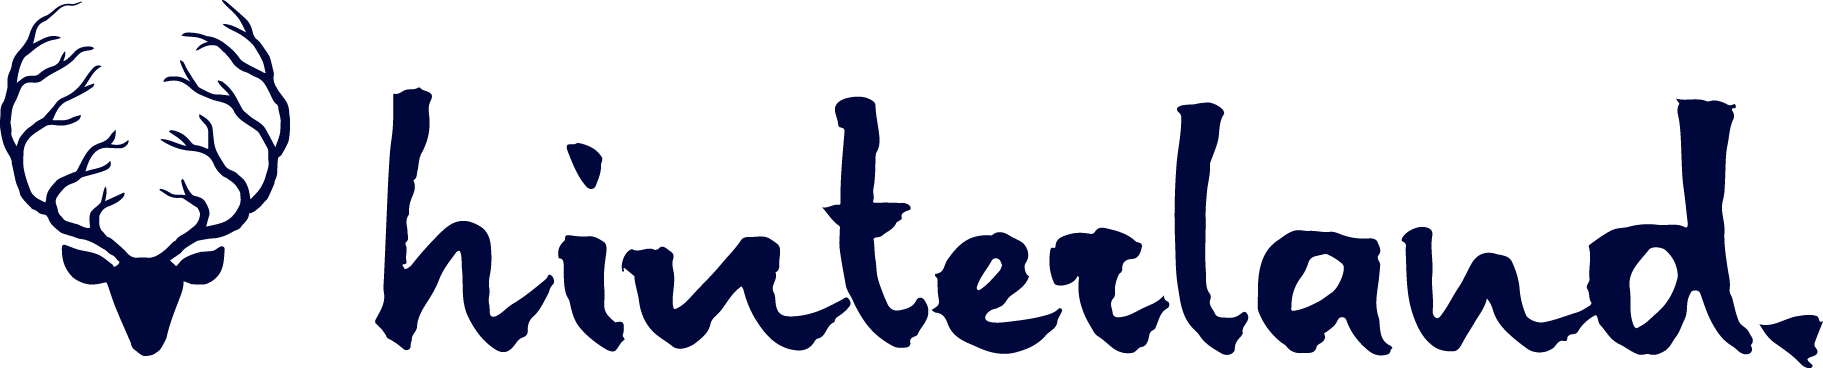 hinterland-logo-horizontal-small.png